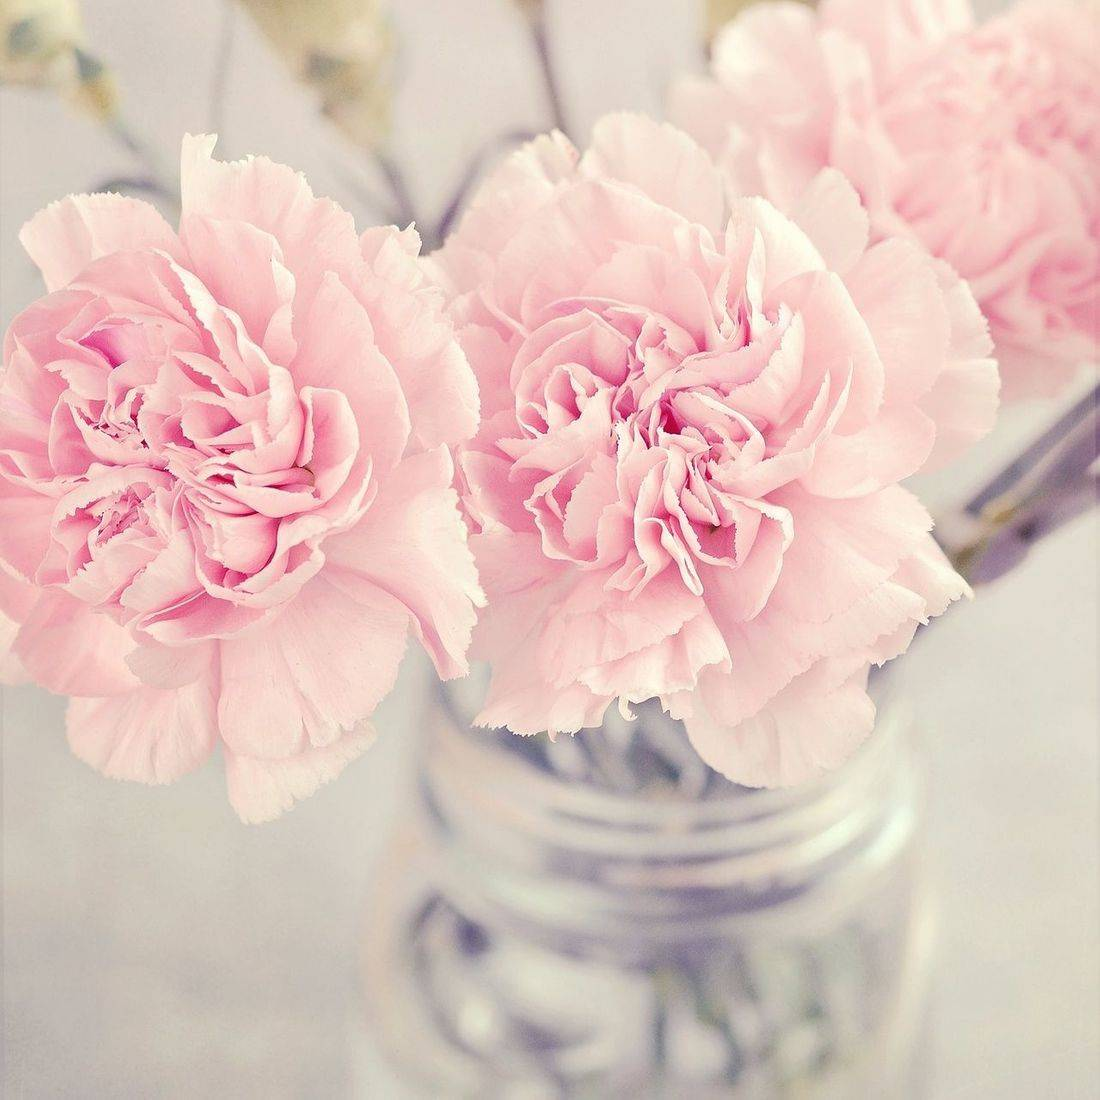 Fidelity, Wedding Flowers, Anniversary Flowers, January Flower, how can I help heal my relationship, flower remedy, pink carnations, what do carnations represent, flower therapy, how can I find my true love, finding my soul mate